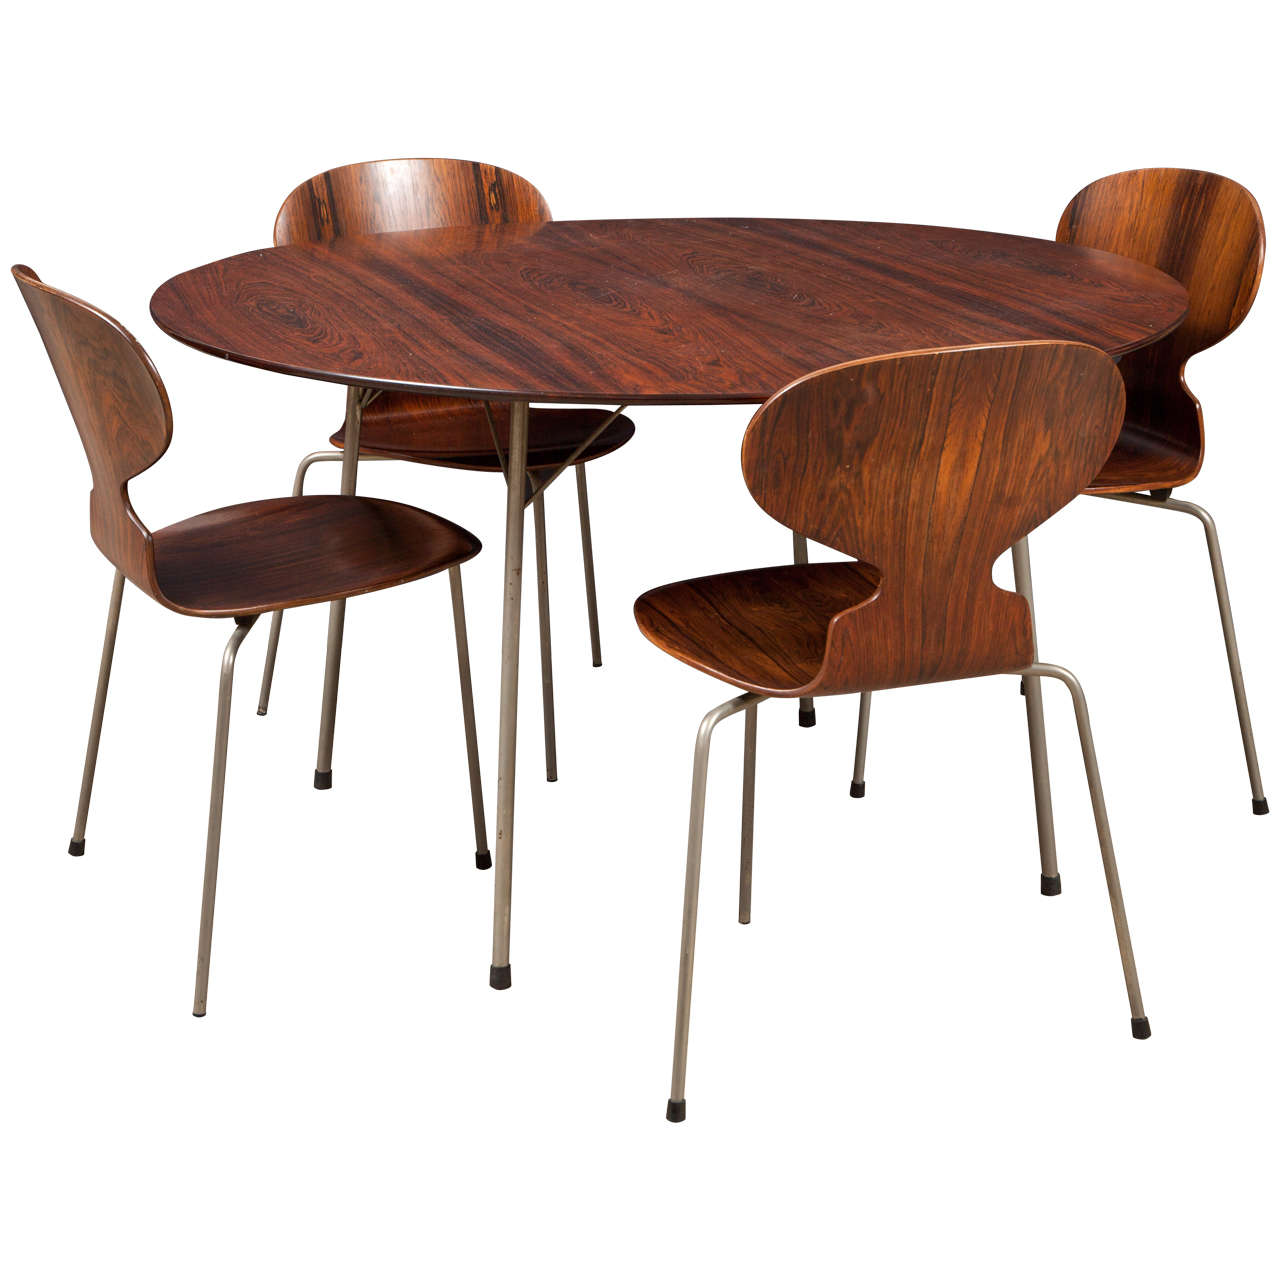 Ant Rosewood Table and Dining Chair Set by Arne Jacobsen 1